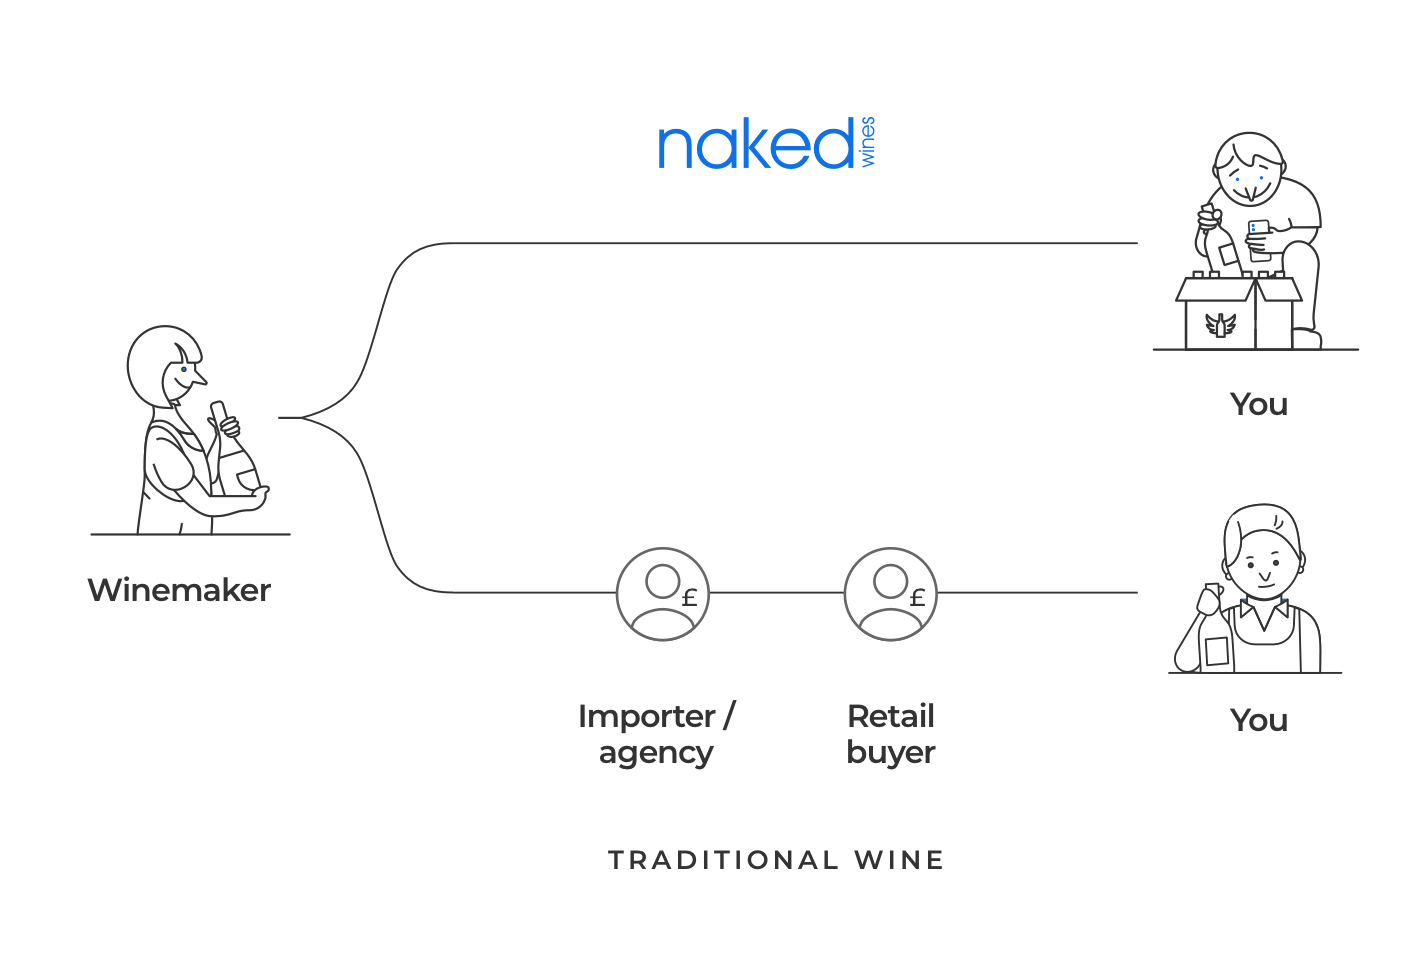 Naked wines sell you wine direct from the winemaker and cut out the traditional extra steps of going via an Importer/agency and Retail Buyer